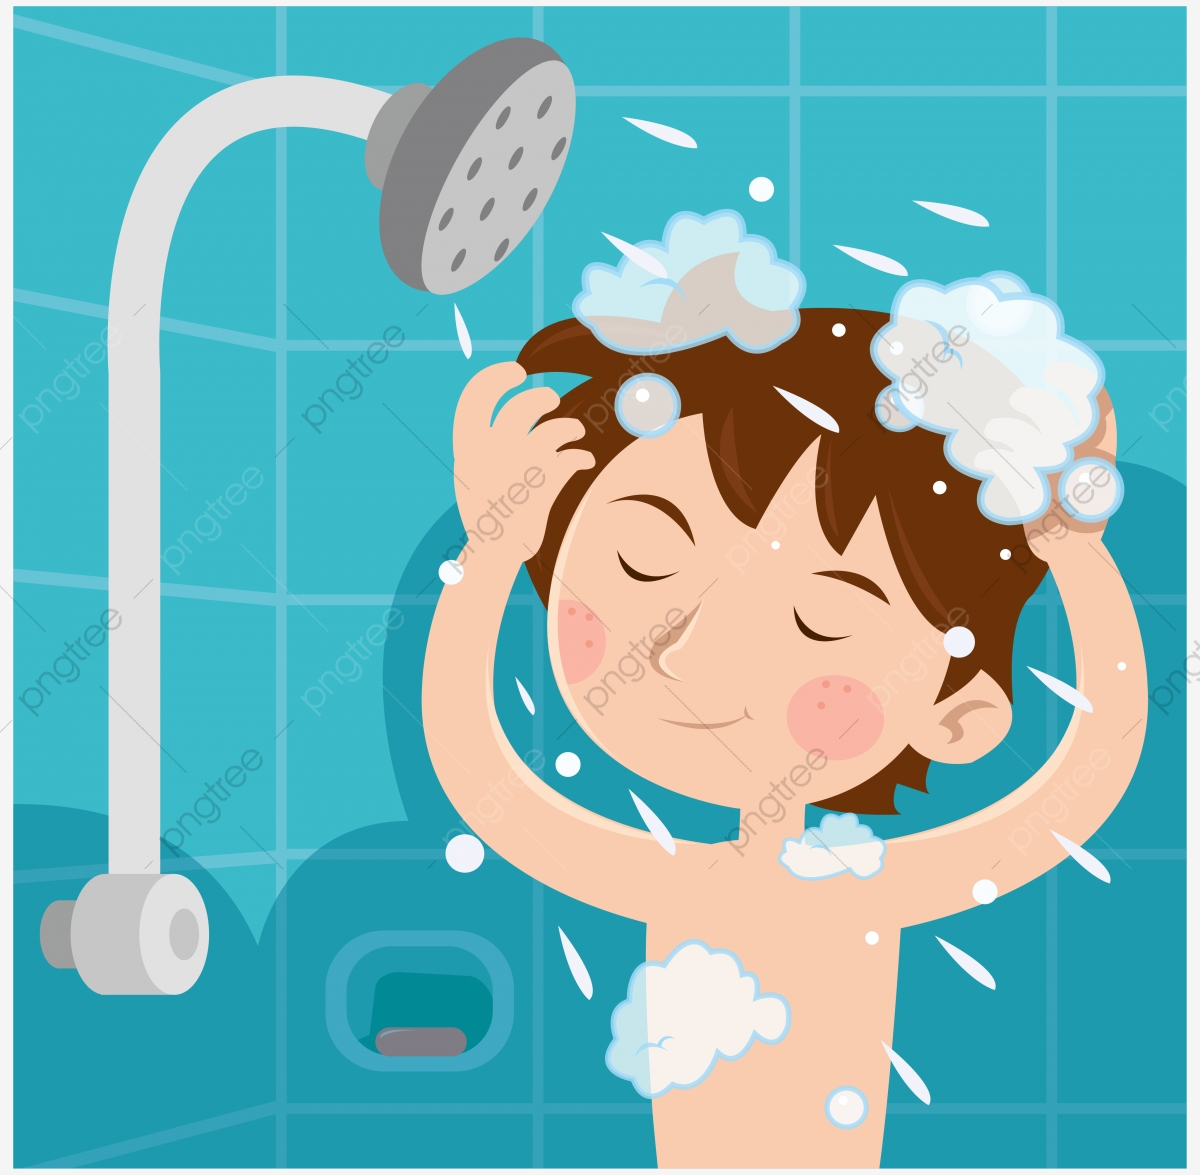 picture royalty free library Kid shower clipart. Kids child illustration png